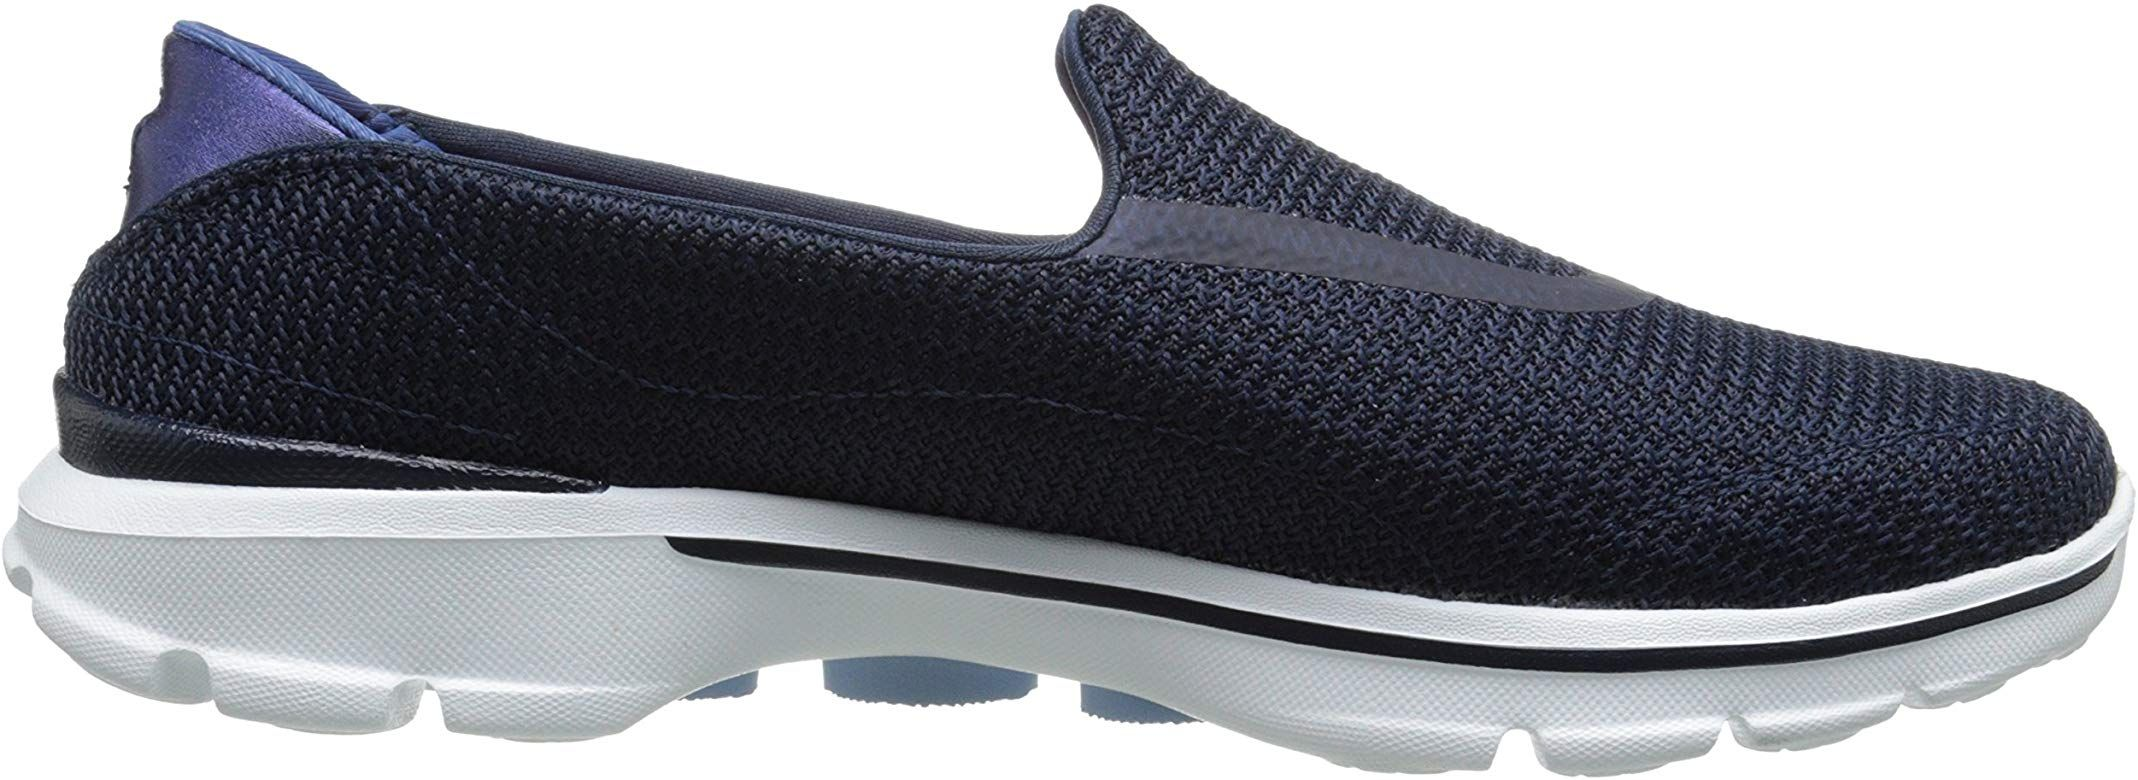 Skechers Skechers Performance femmes's Go Walk 4 Kindle Slip On Walking chaussures,NavyWhite,9 M US from Amazon | more